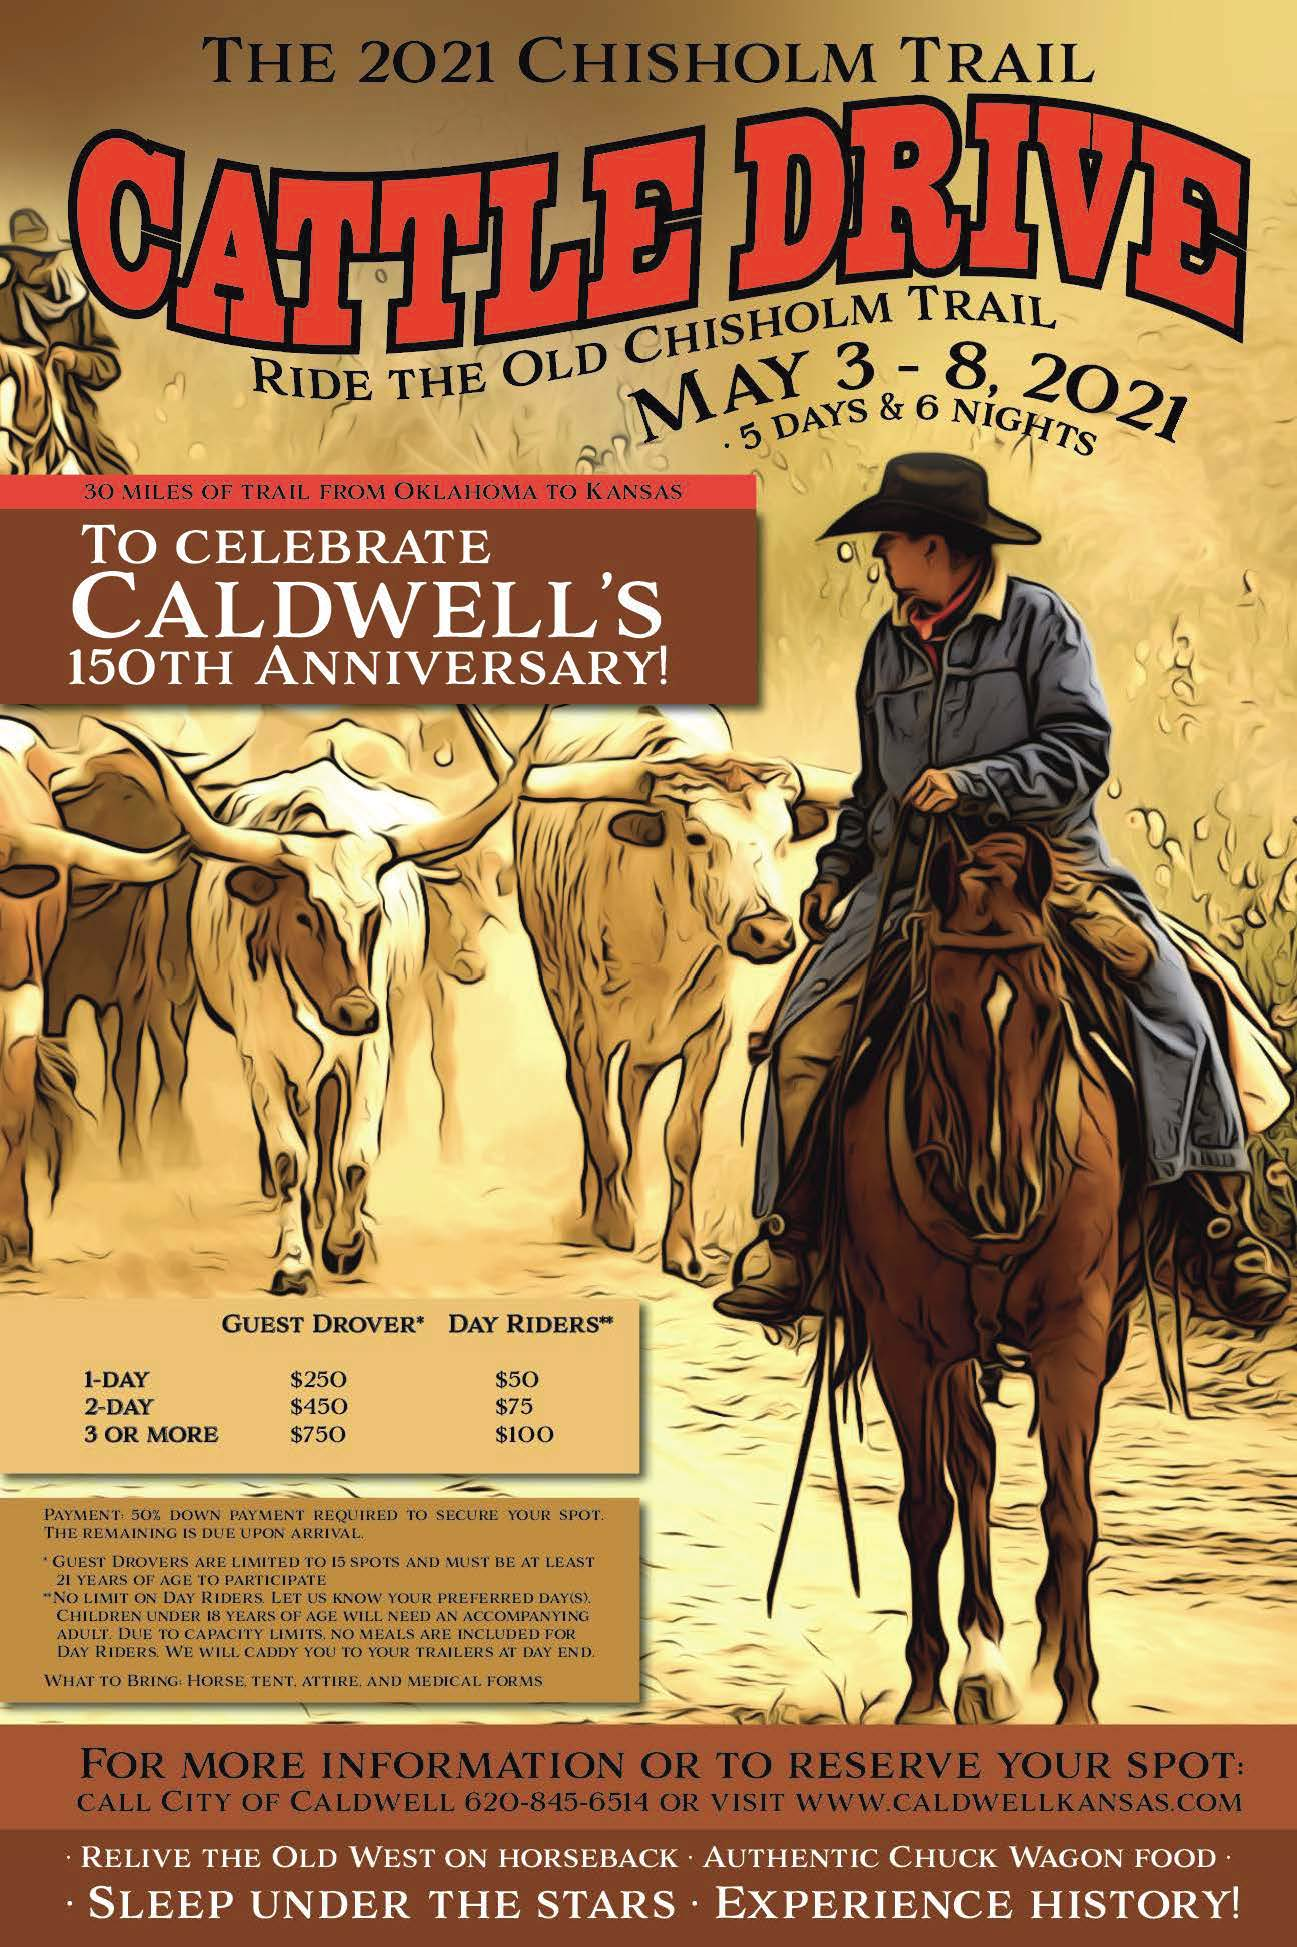 Chisholm Trail Cattle Drive